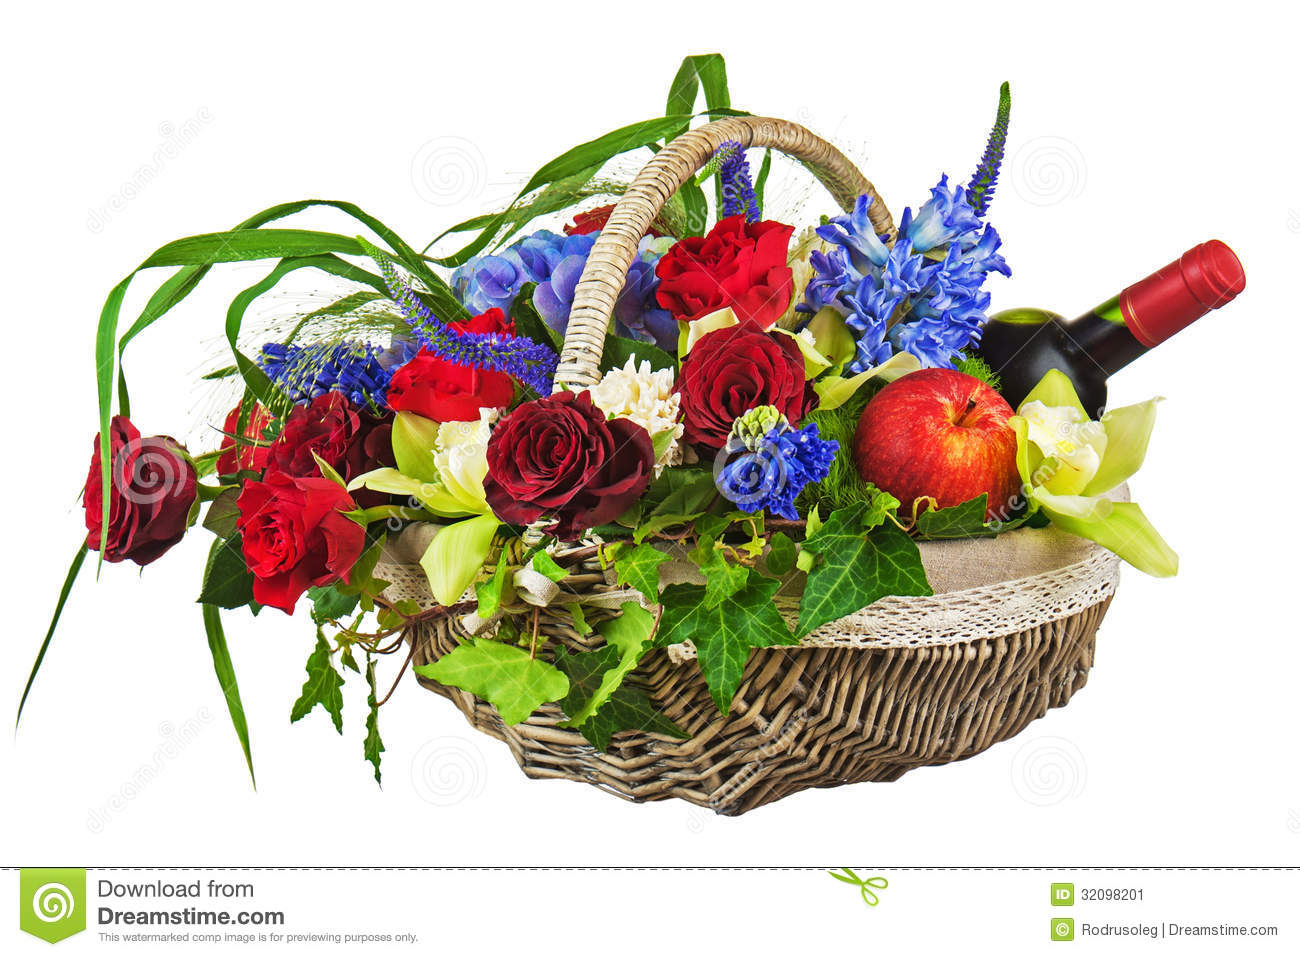 Flower Arrangement Of Roses Orchids Fruits And Bottle Of Wine Stock Image